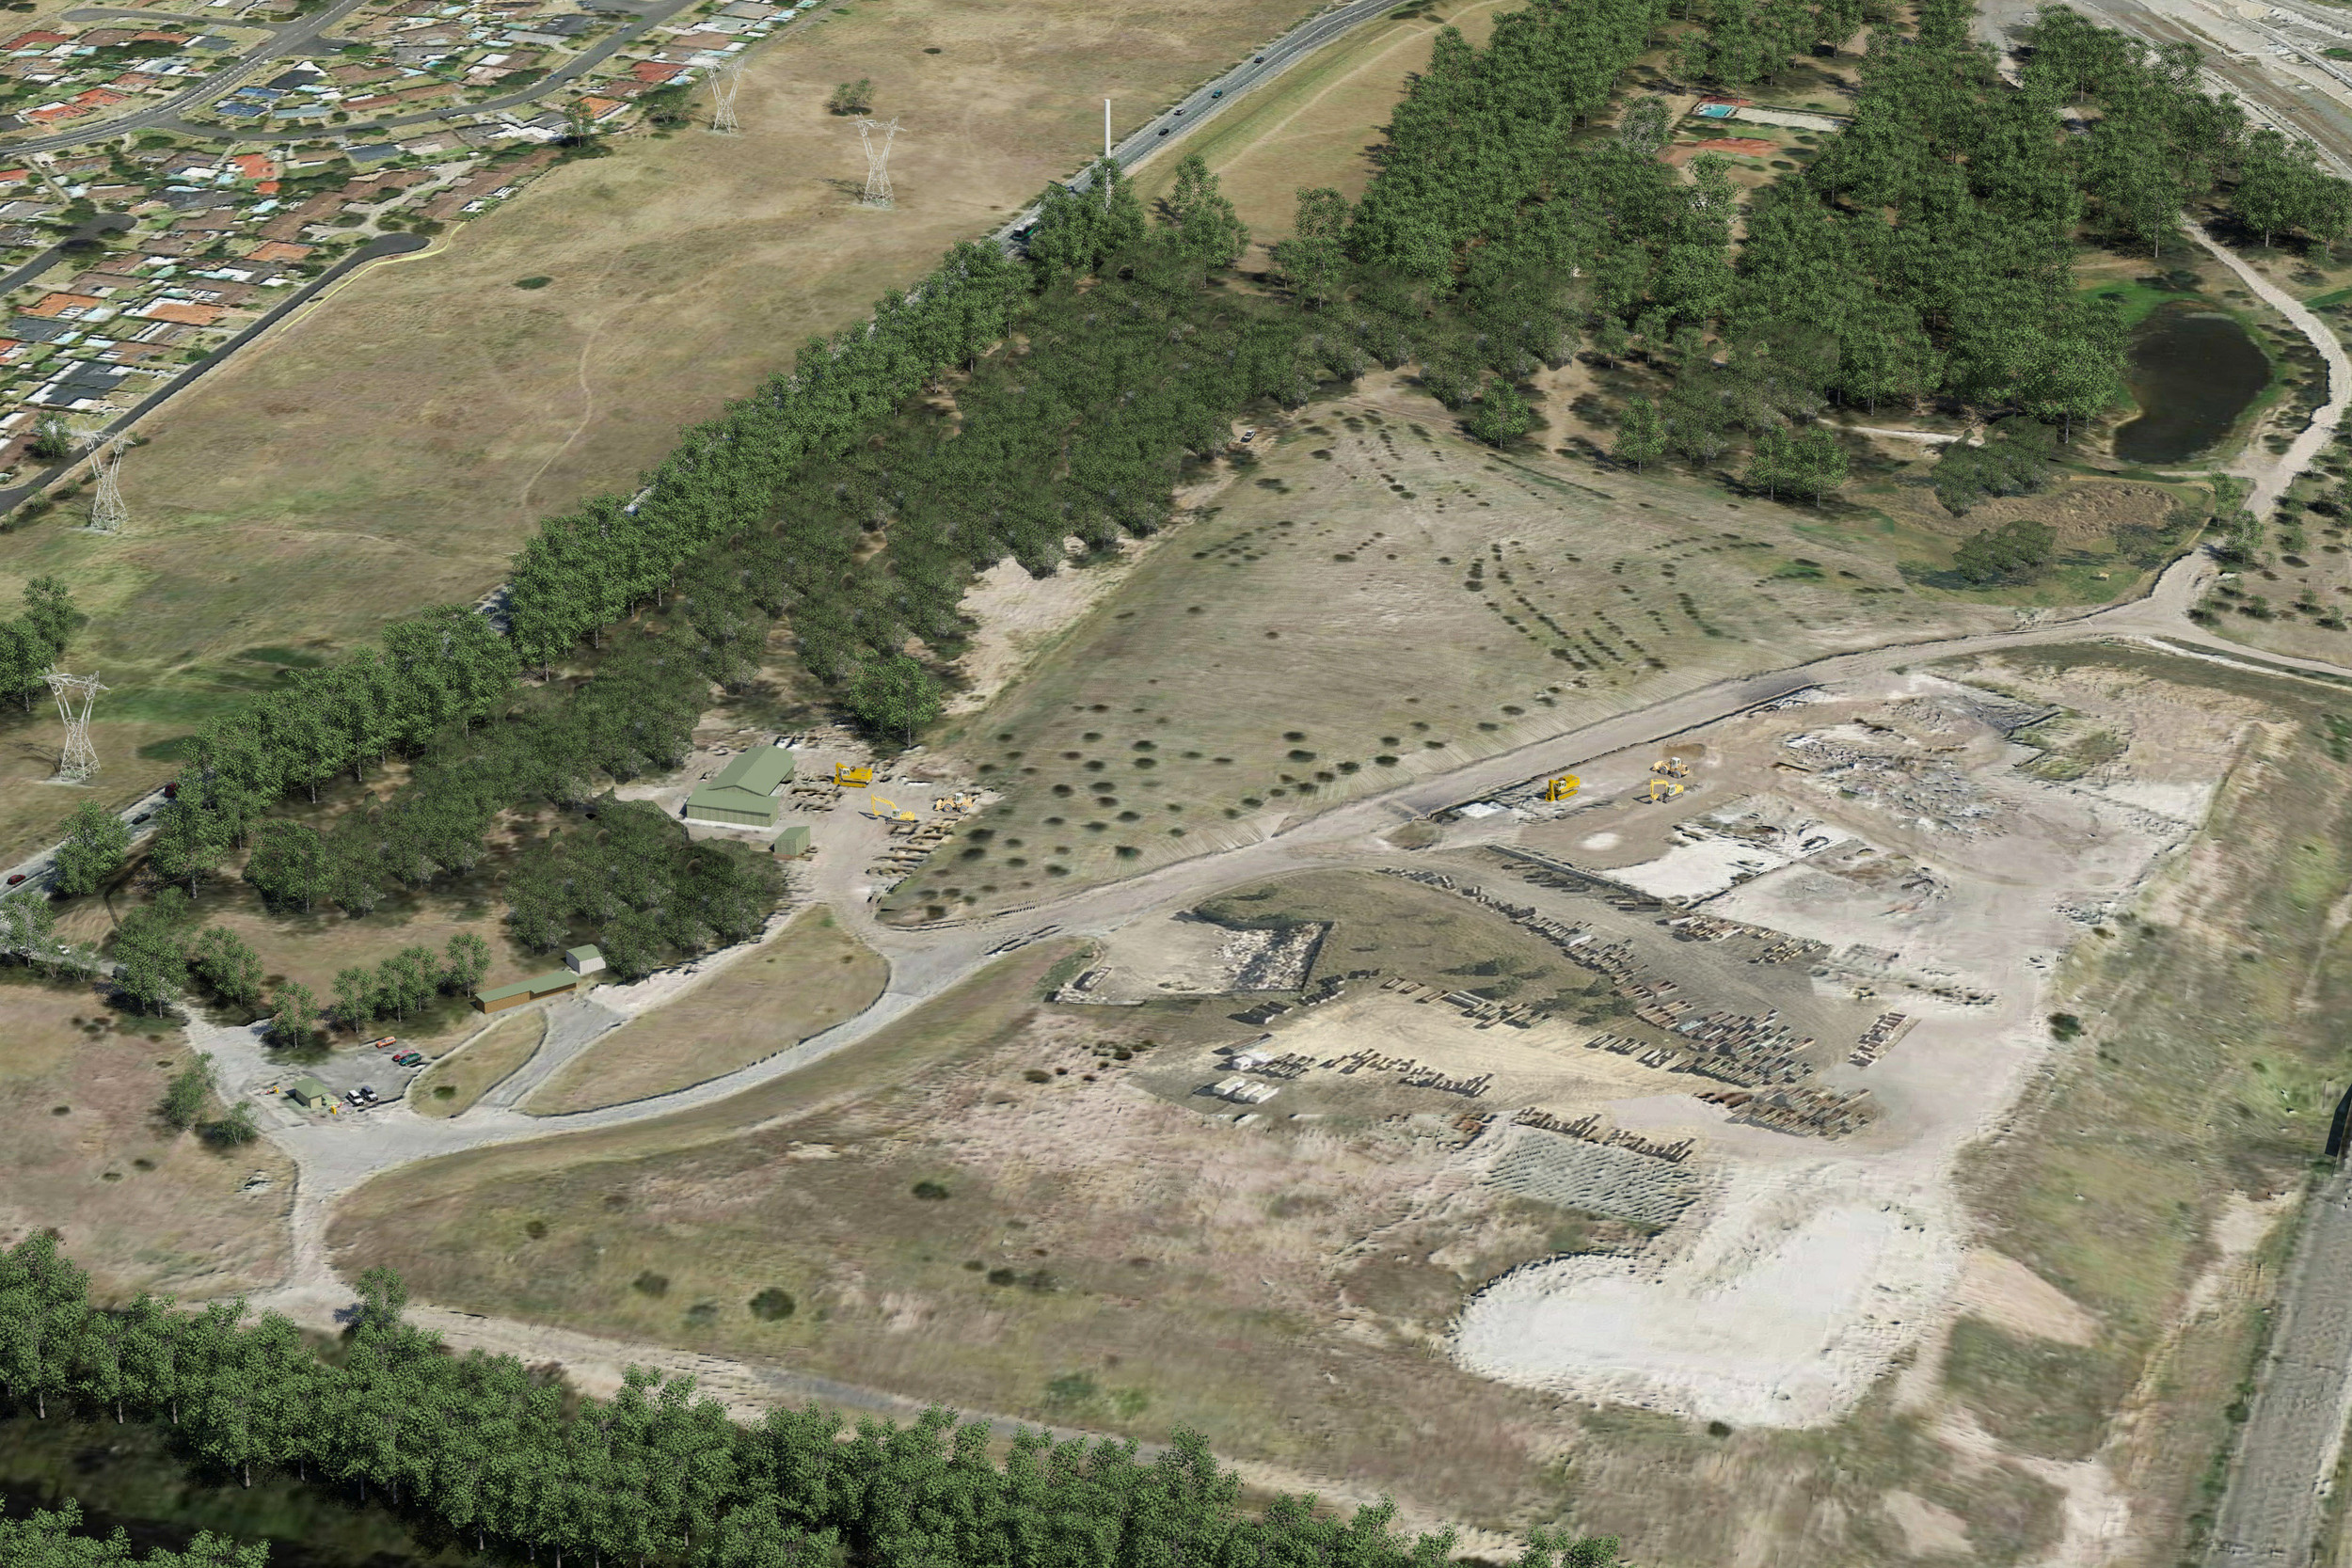 North East view of the Glenfield Waste Site prior to development of the Materials Recycling Facility